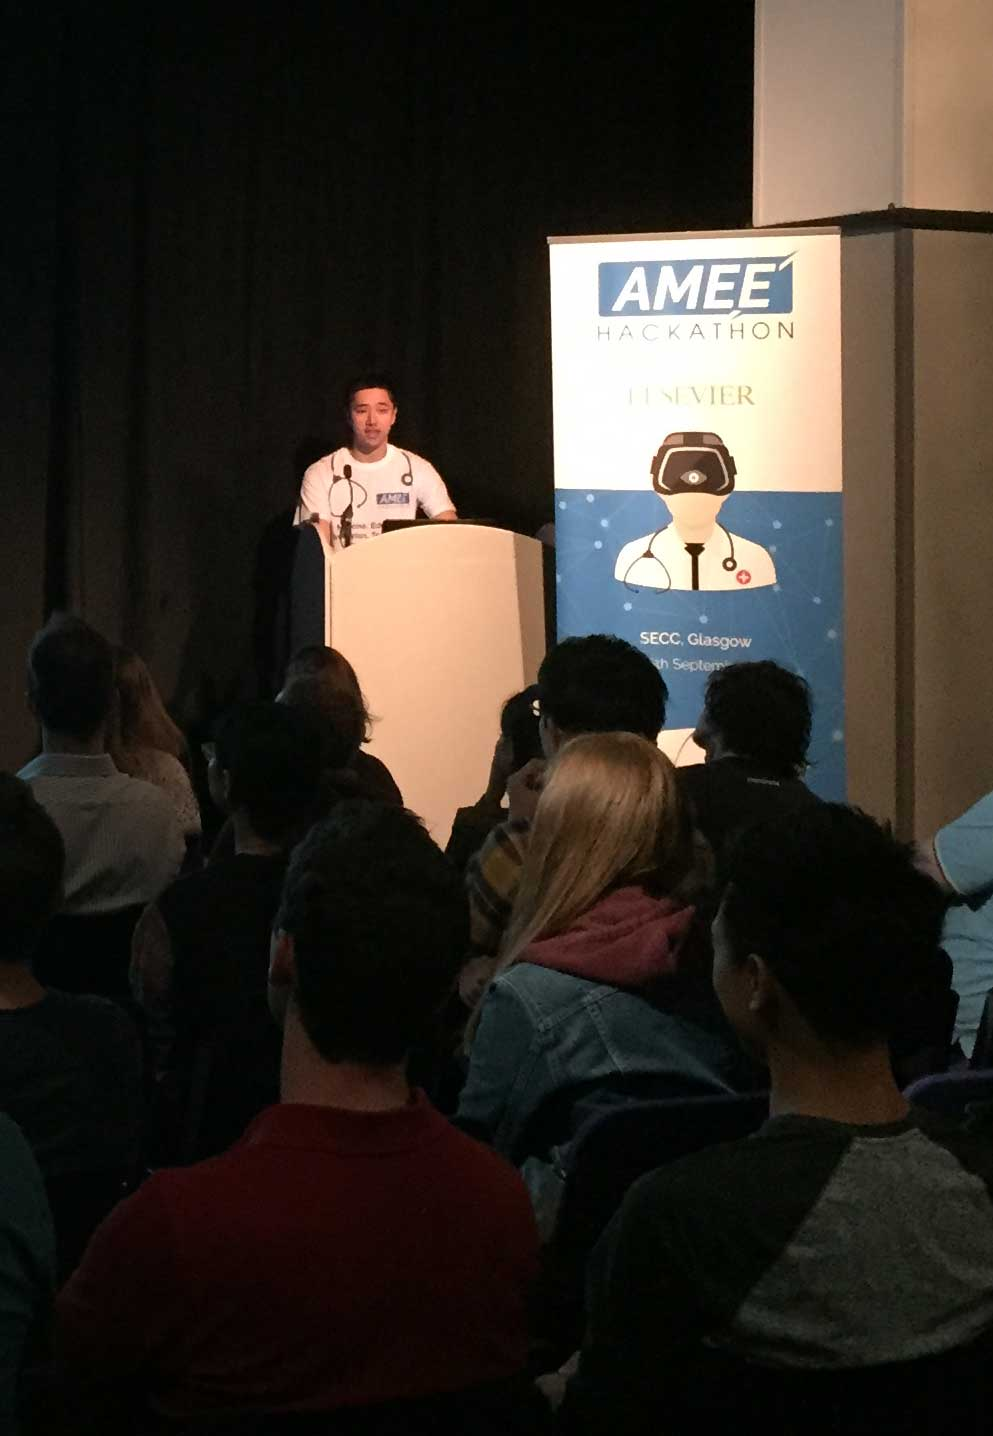 AMEEHacks organizer Jeremy Chui welcomes the participants